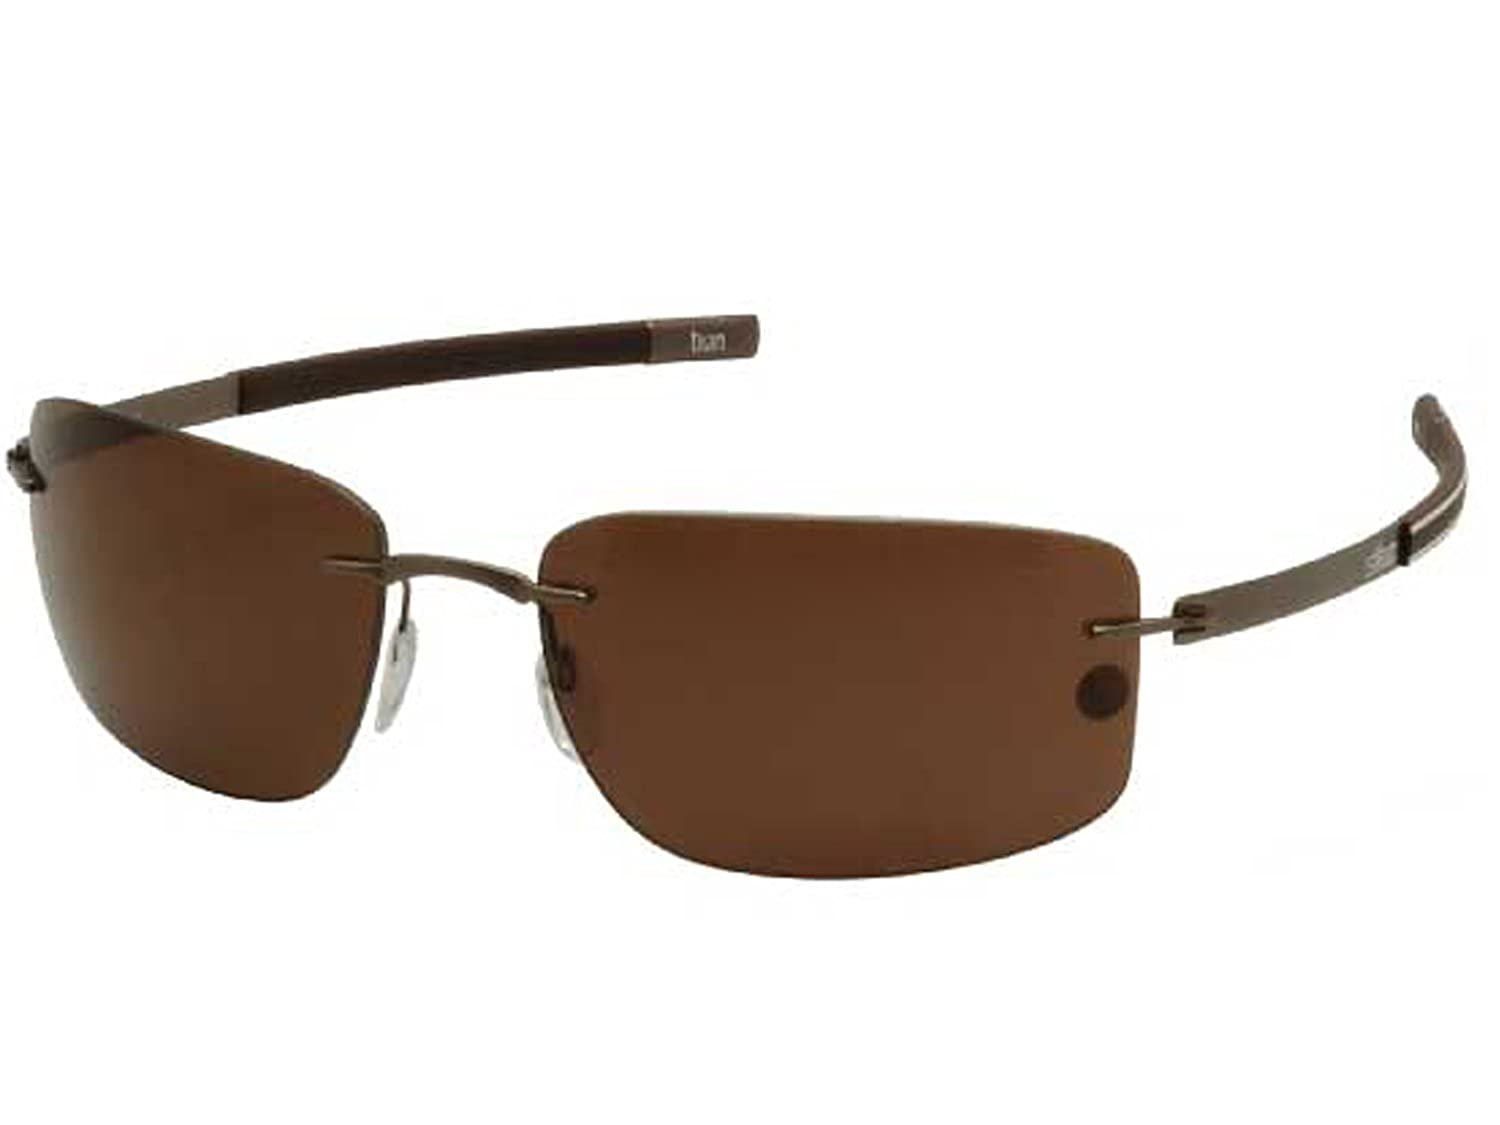 8653s Sunglasses ukClothing Silhouette co 6201Amazon mN8nPv0wOy